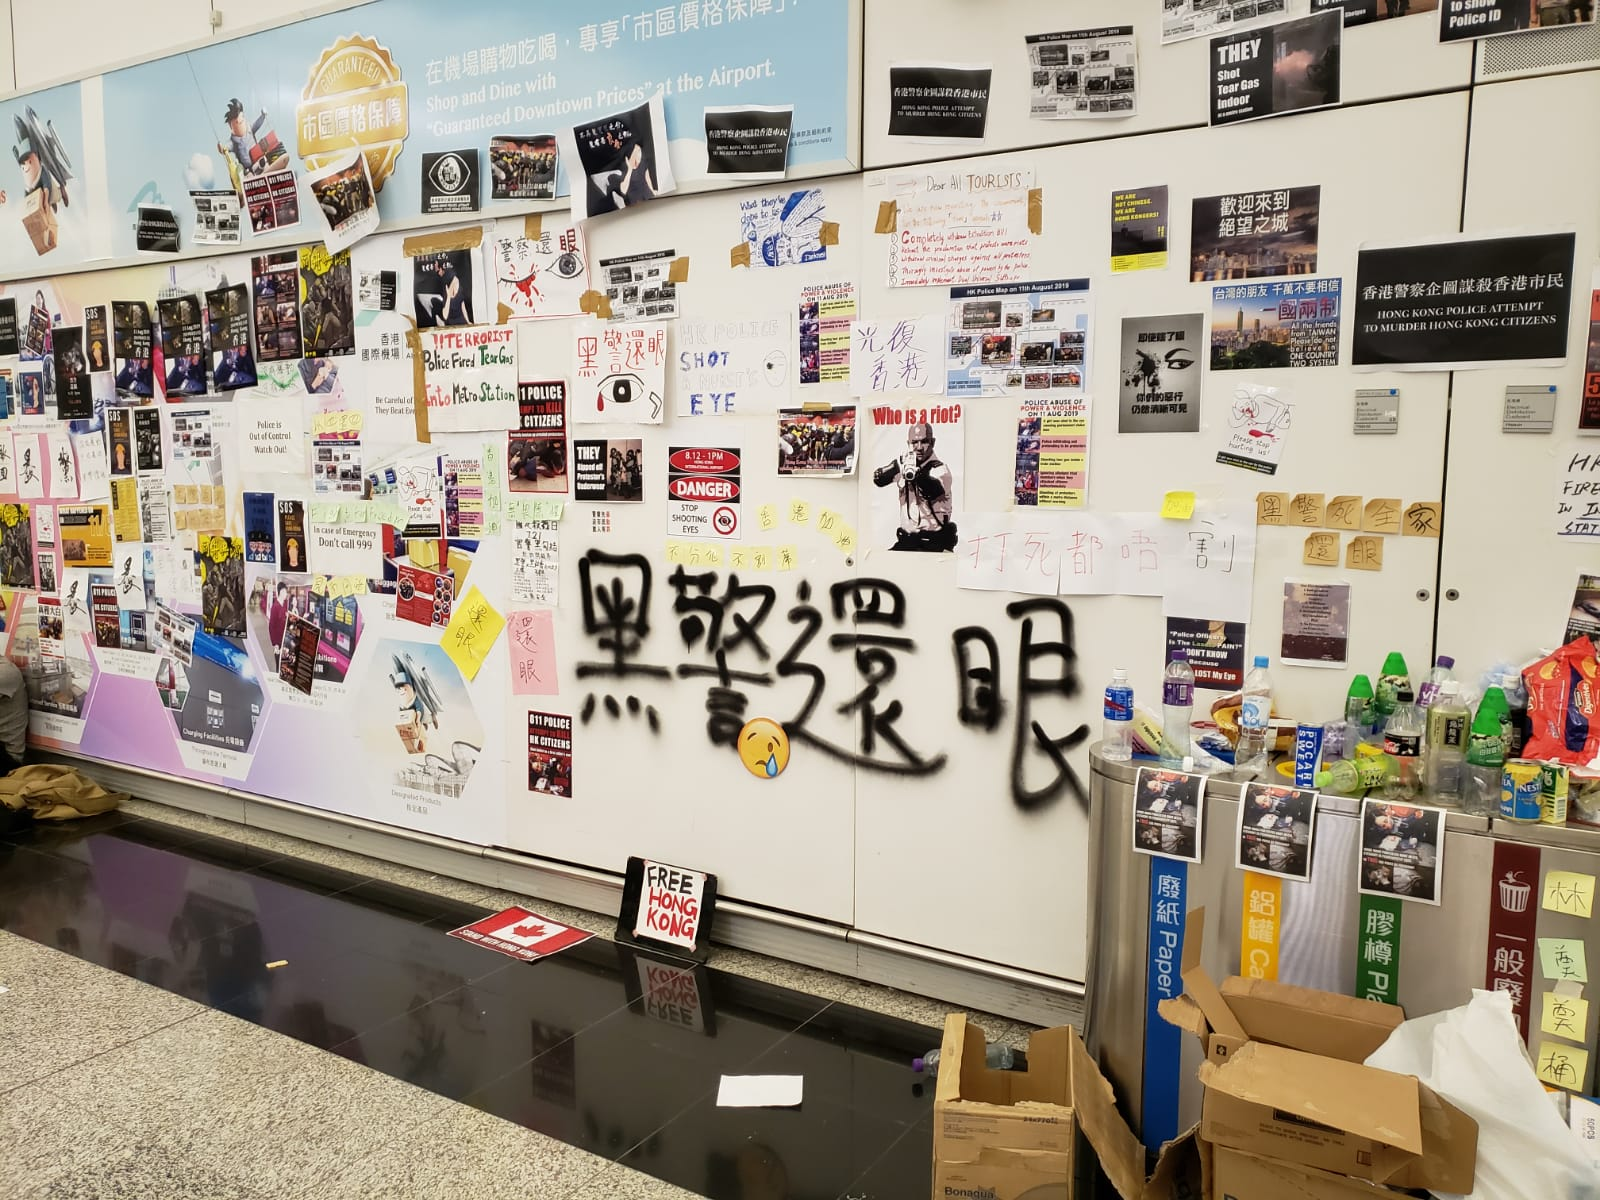 The airport walls are plastered with posters, art, and graffiti.